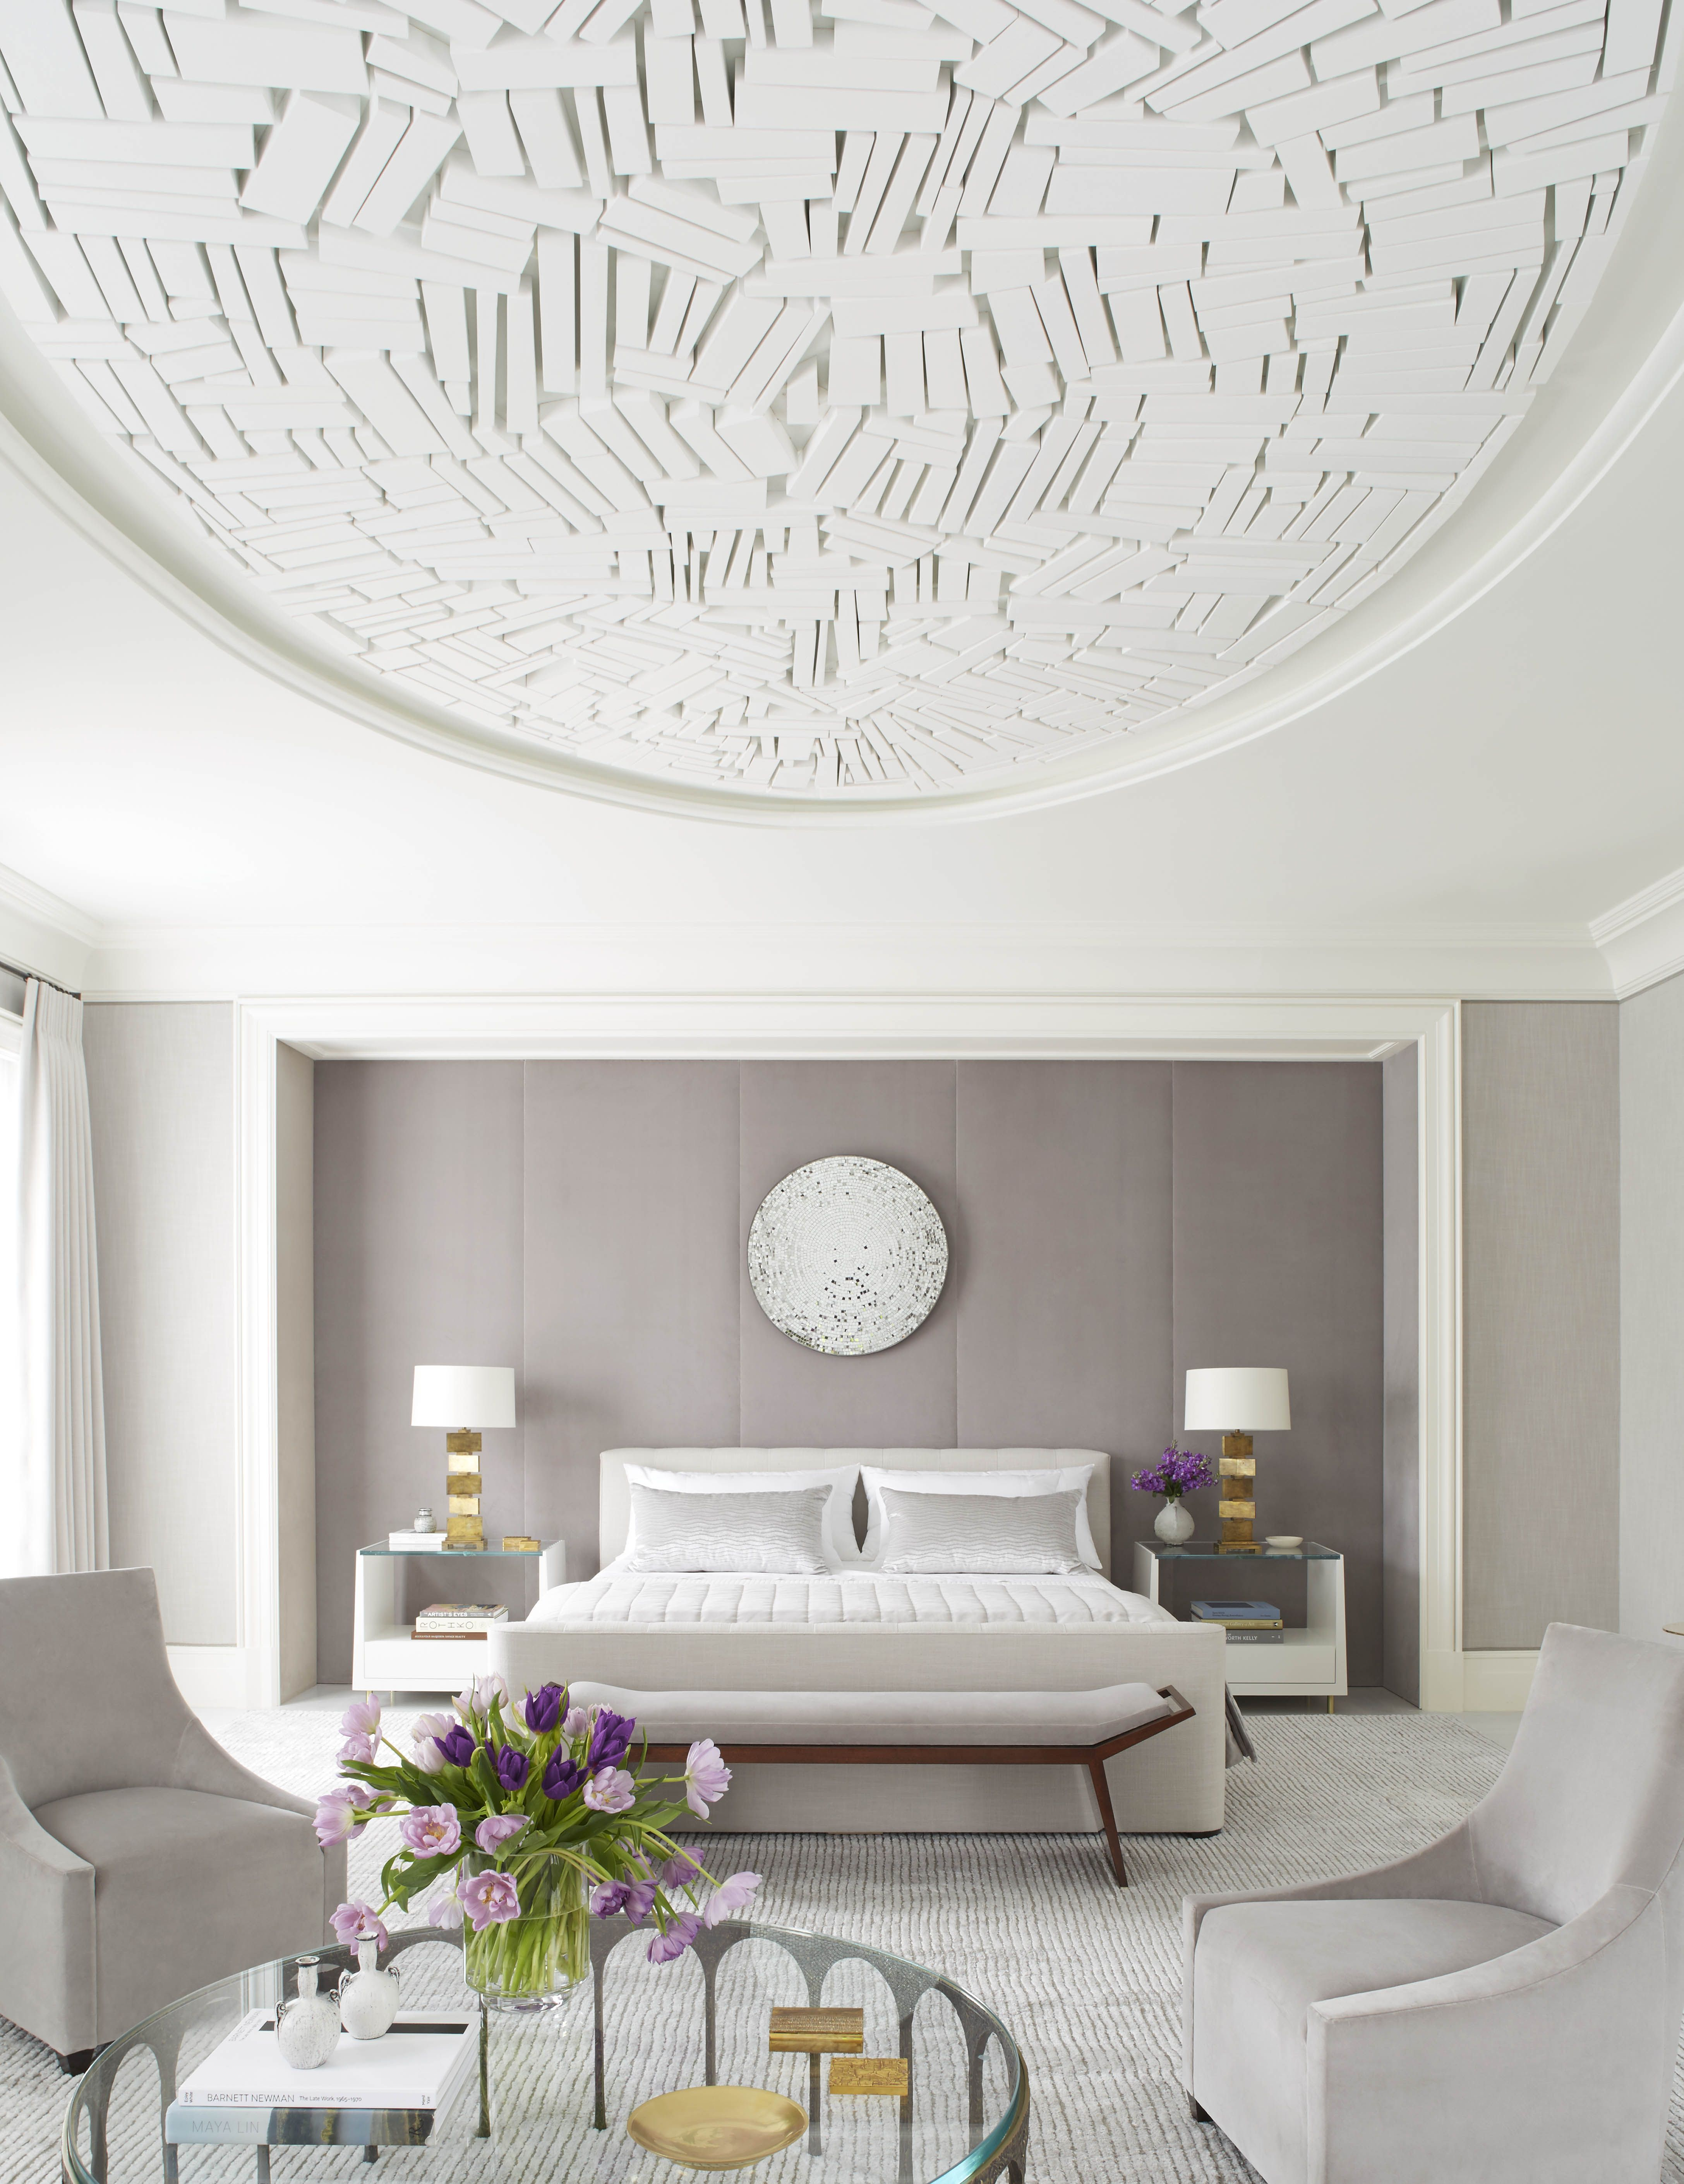 Formation Adulte Decoration Interieur 40 Best Bedroom Ideas Beautiful Bedroom Decorating Tips